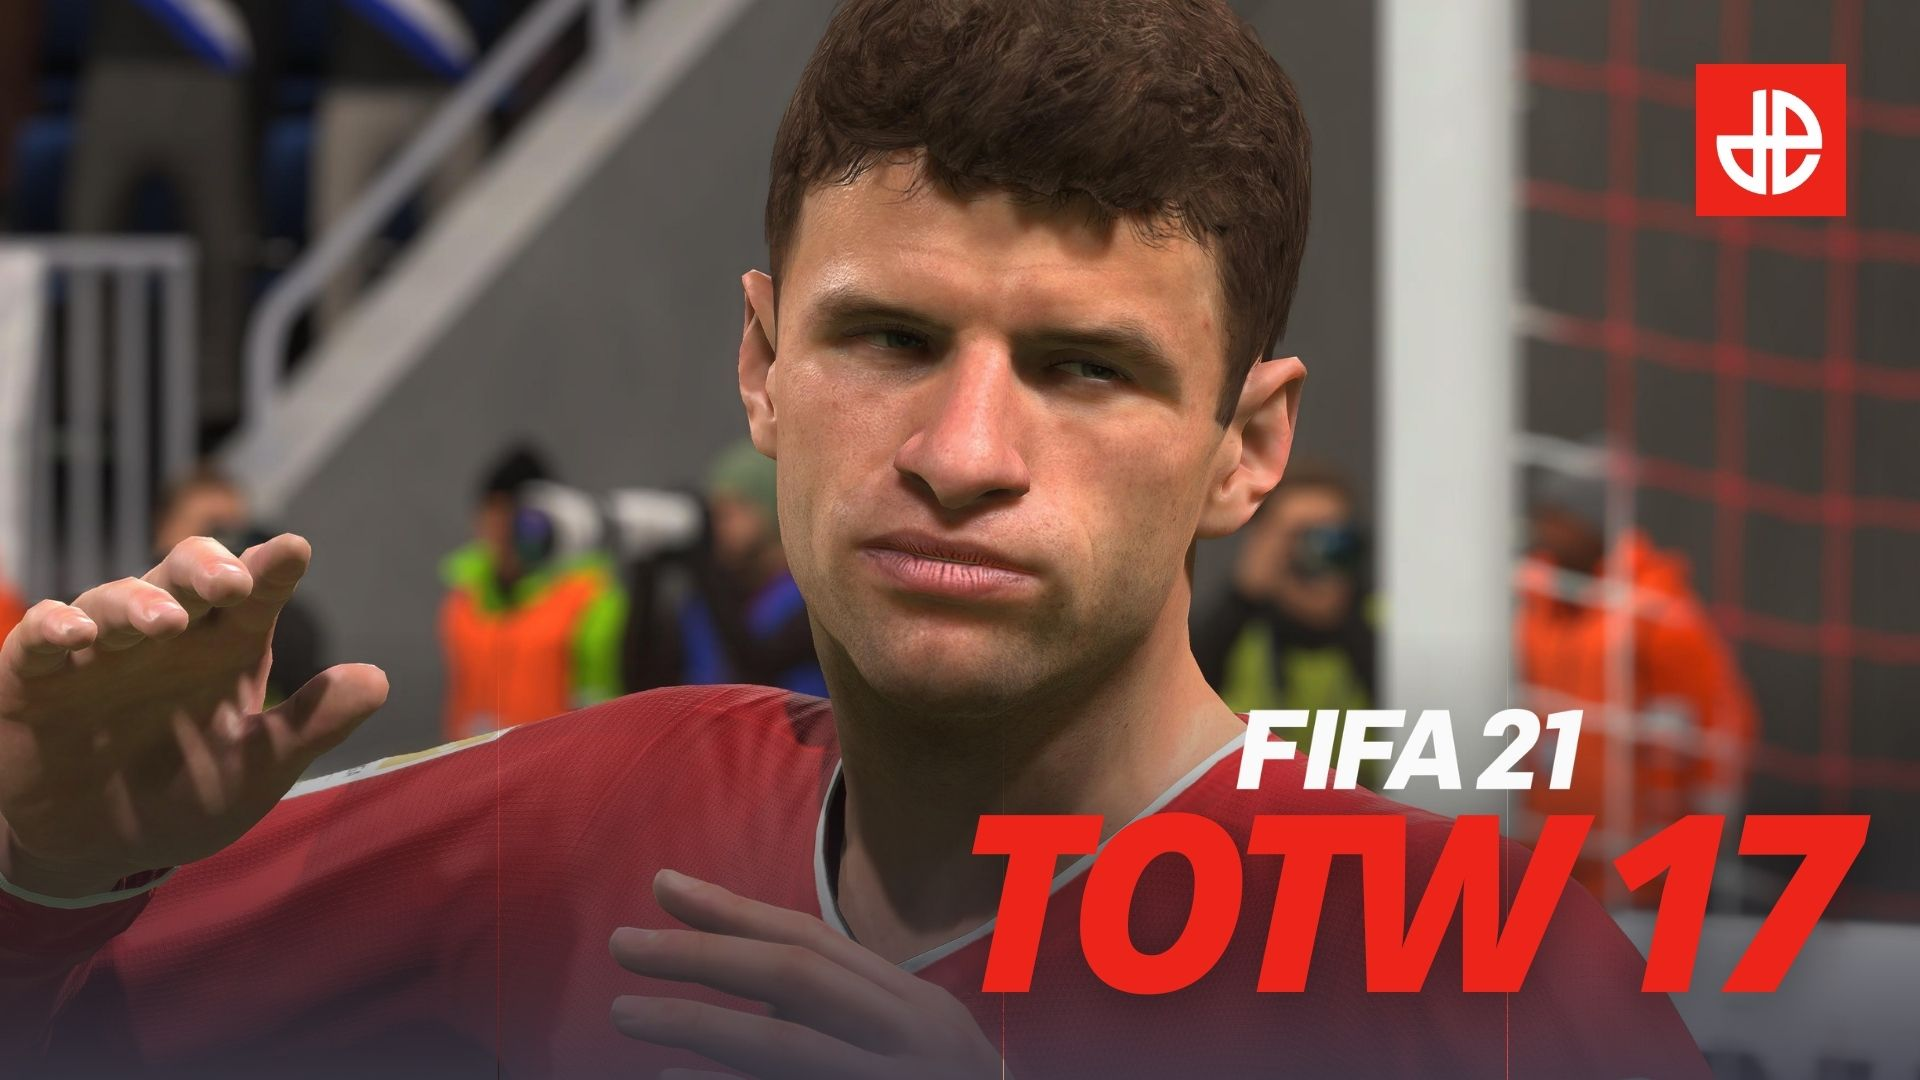 Thomas Muller Bayern Munich in Team of the Week TOTW FIFA 21 squad.